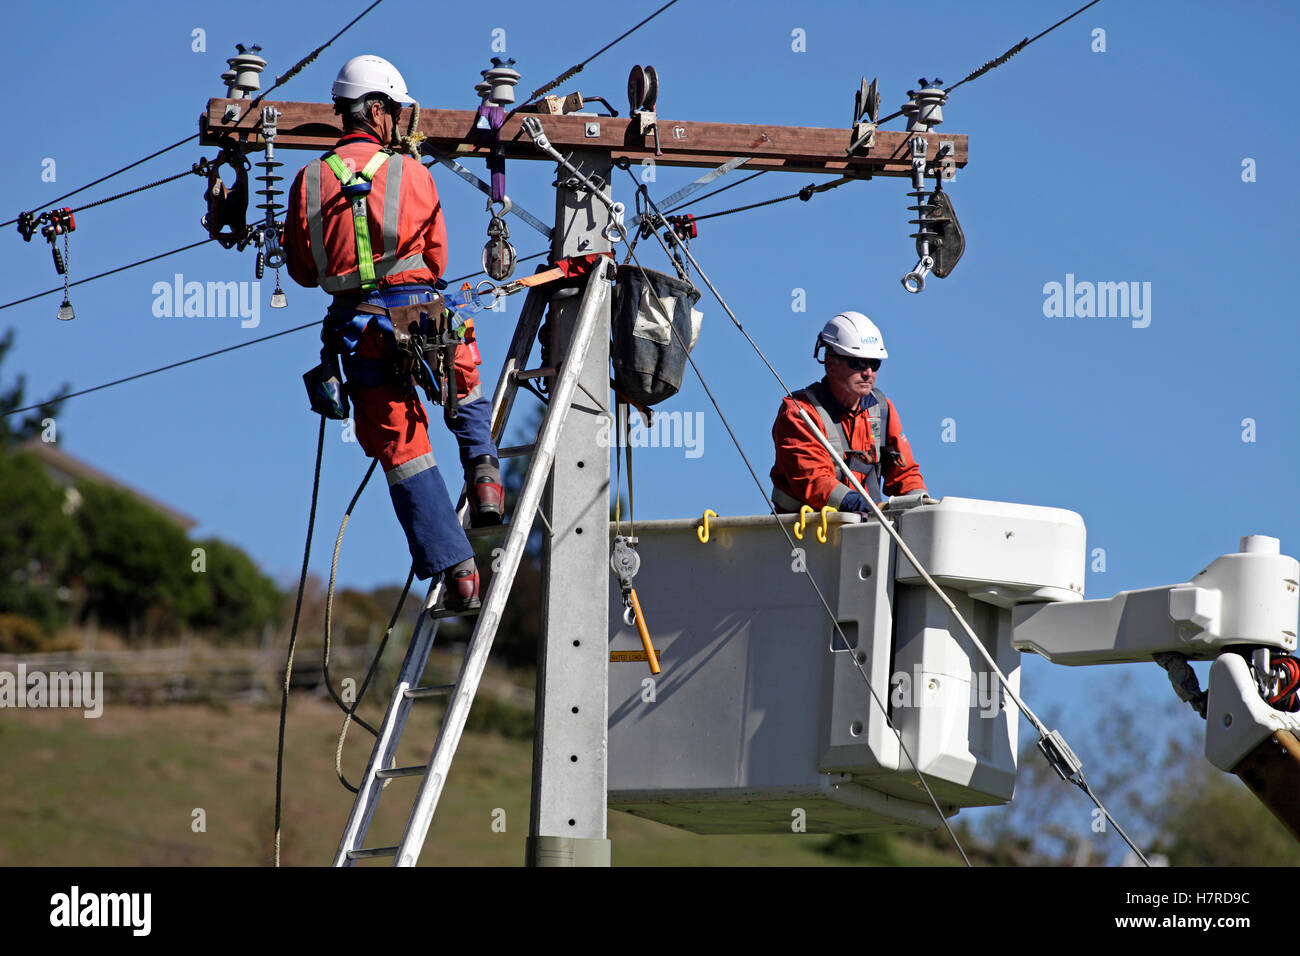 power company workers on ladder and in a cherry picker hoist replacing high voltage power cables - Stock Image